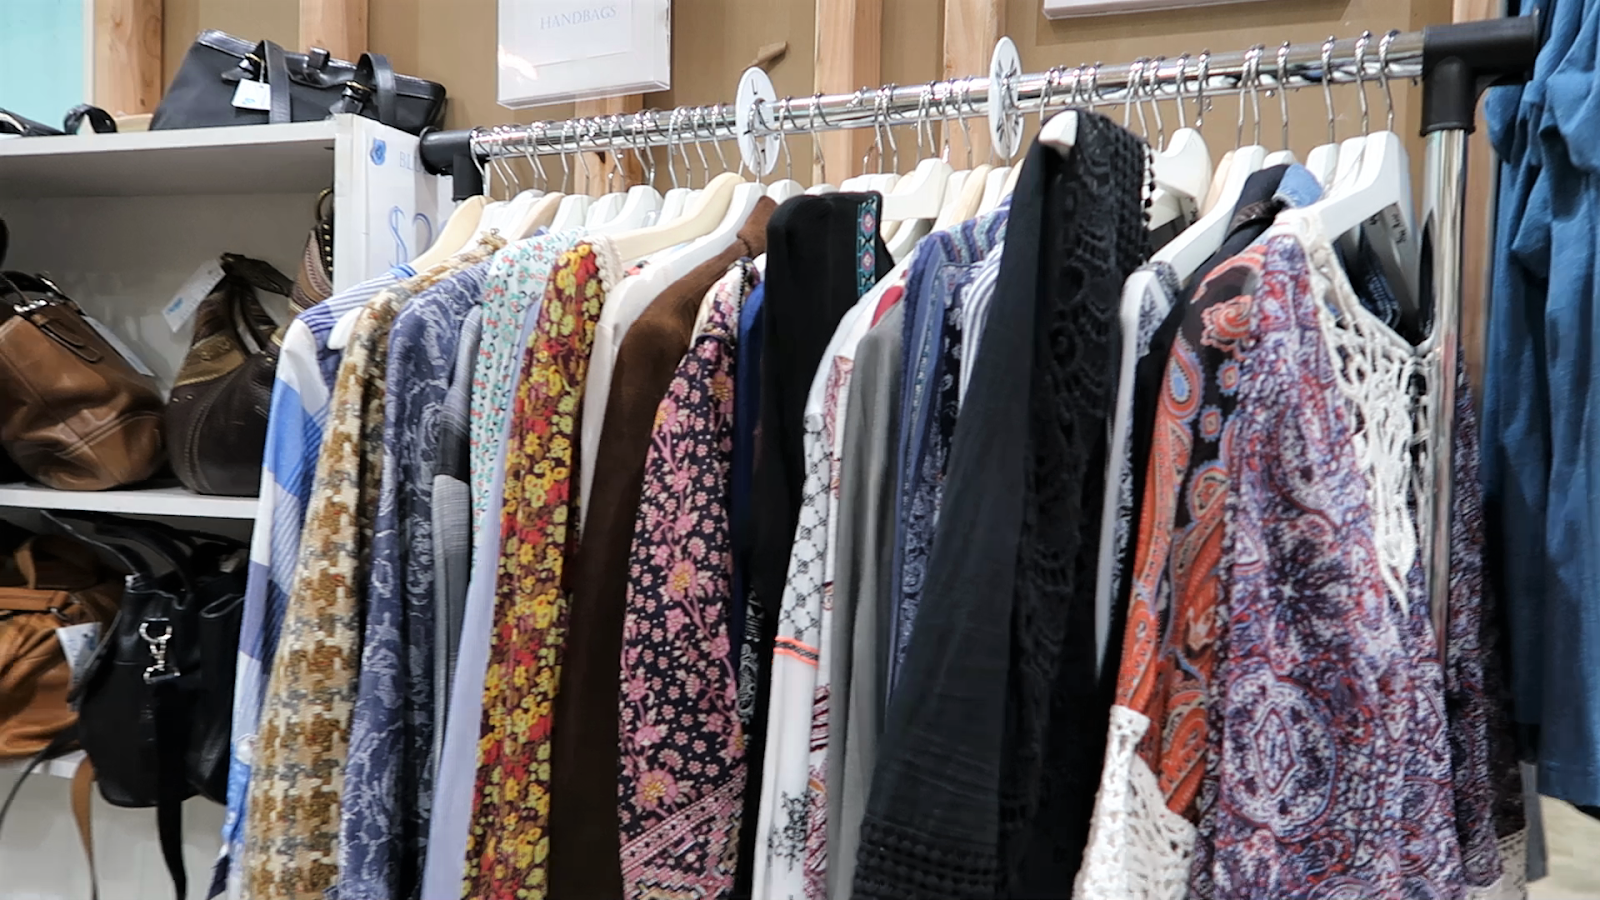 A Rack with thrift clothes at the Thrift store. Thrifting With Style: Looking through every rack for stylish secondhand clothes to wear and style.